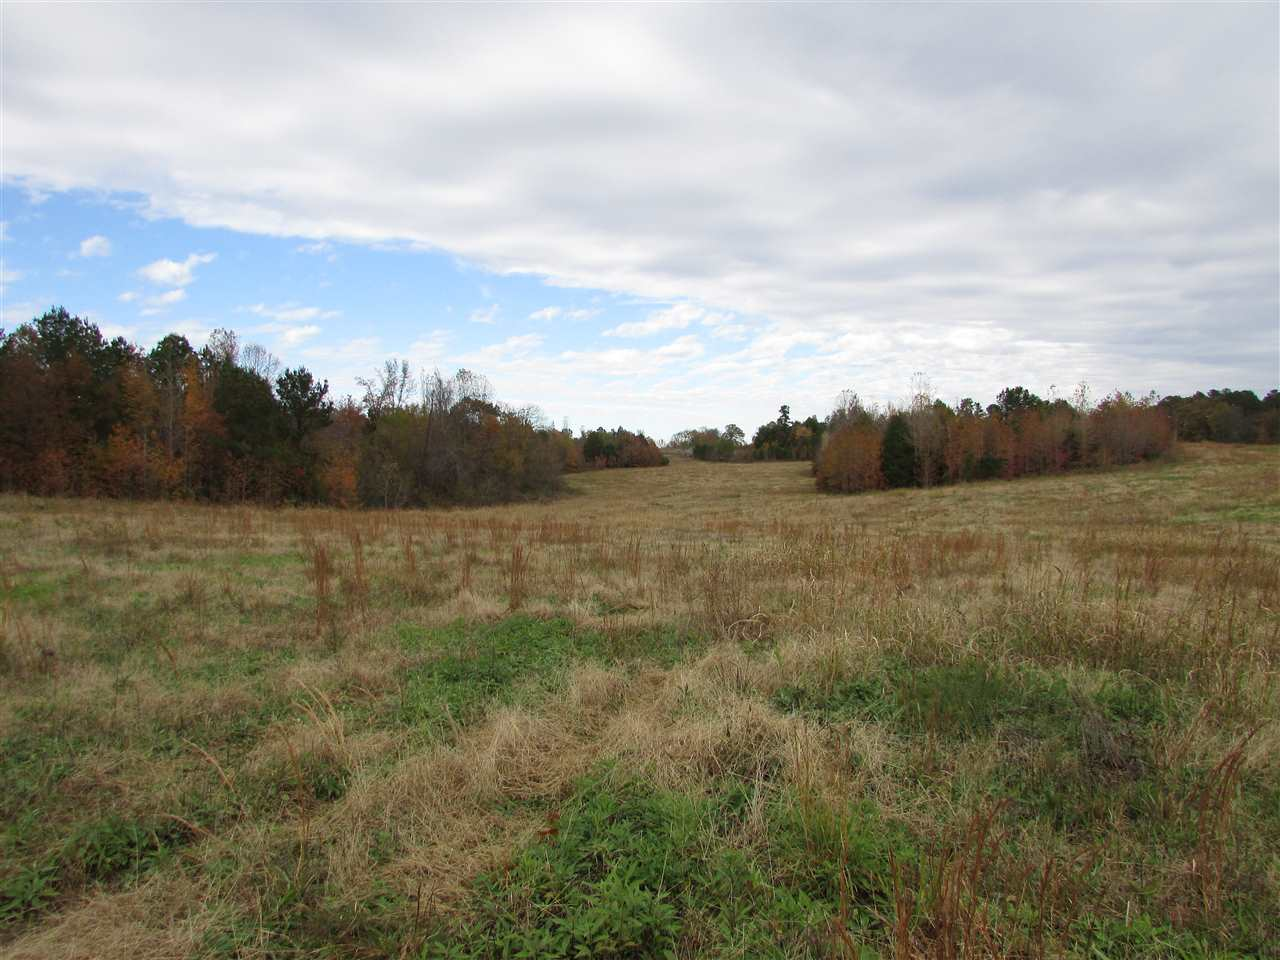 Springhill Church Rd,Huntingdon,Tennessee 38344,Lots/land,Springhill Church Rd,185665